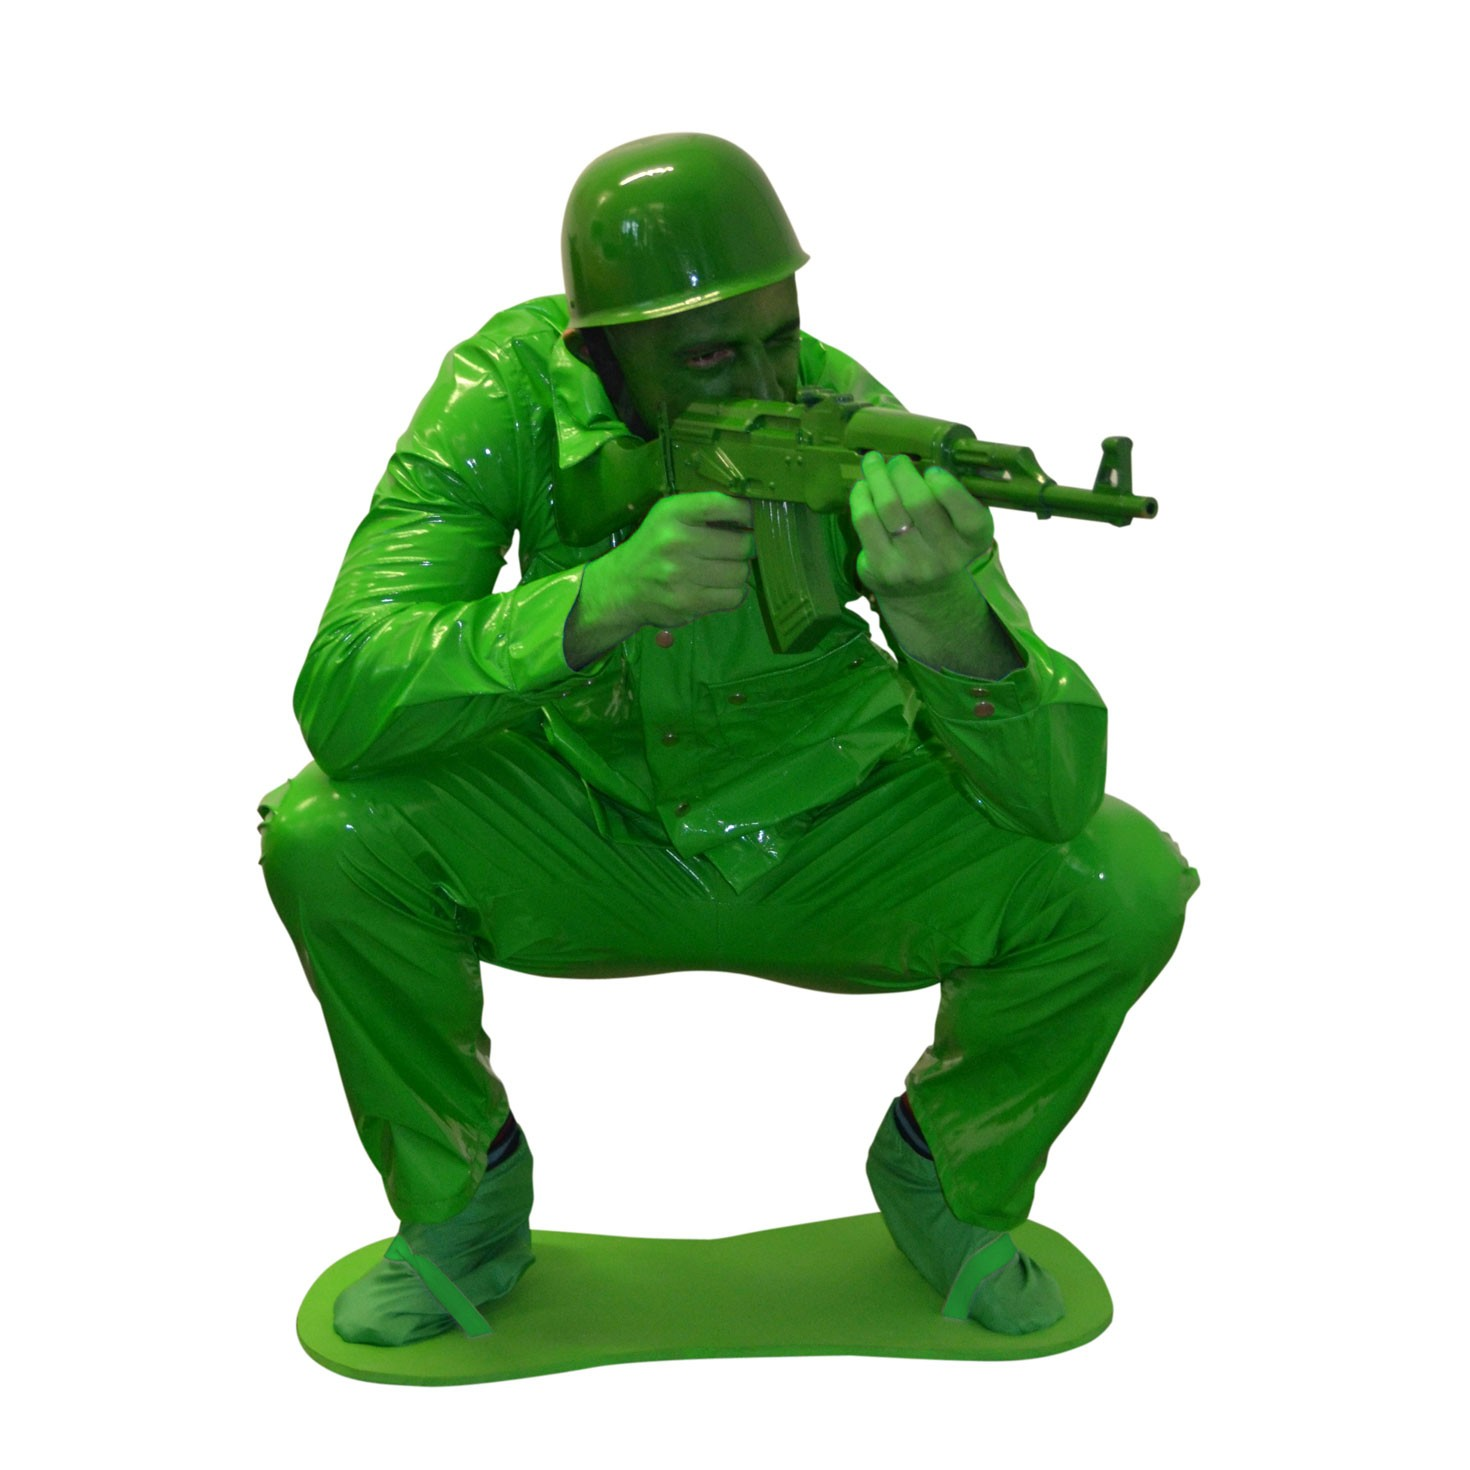 Army Toys Color : Toy soldier adult costume army man men green story